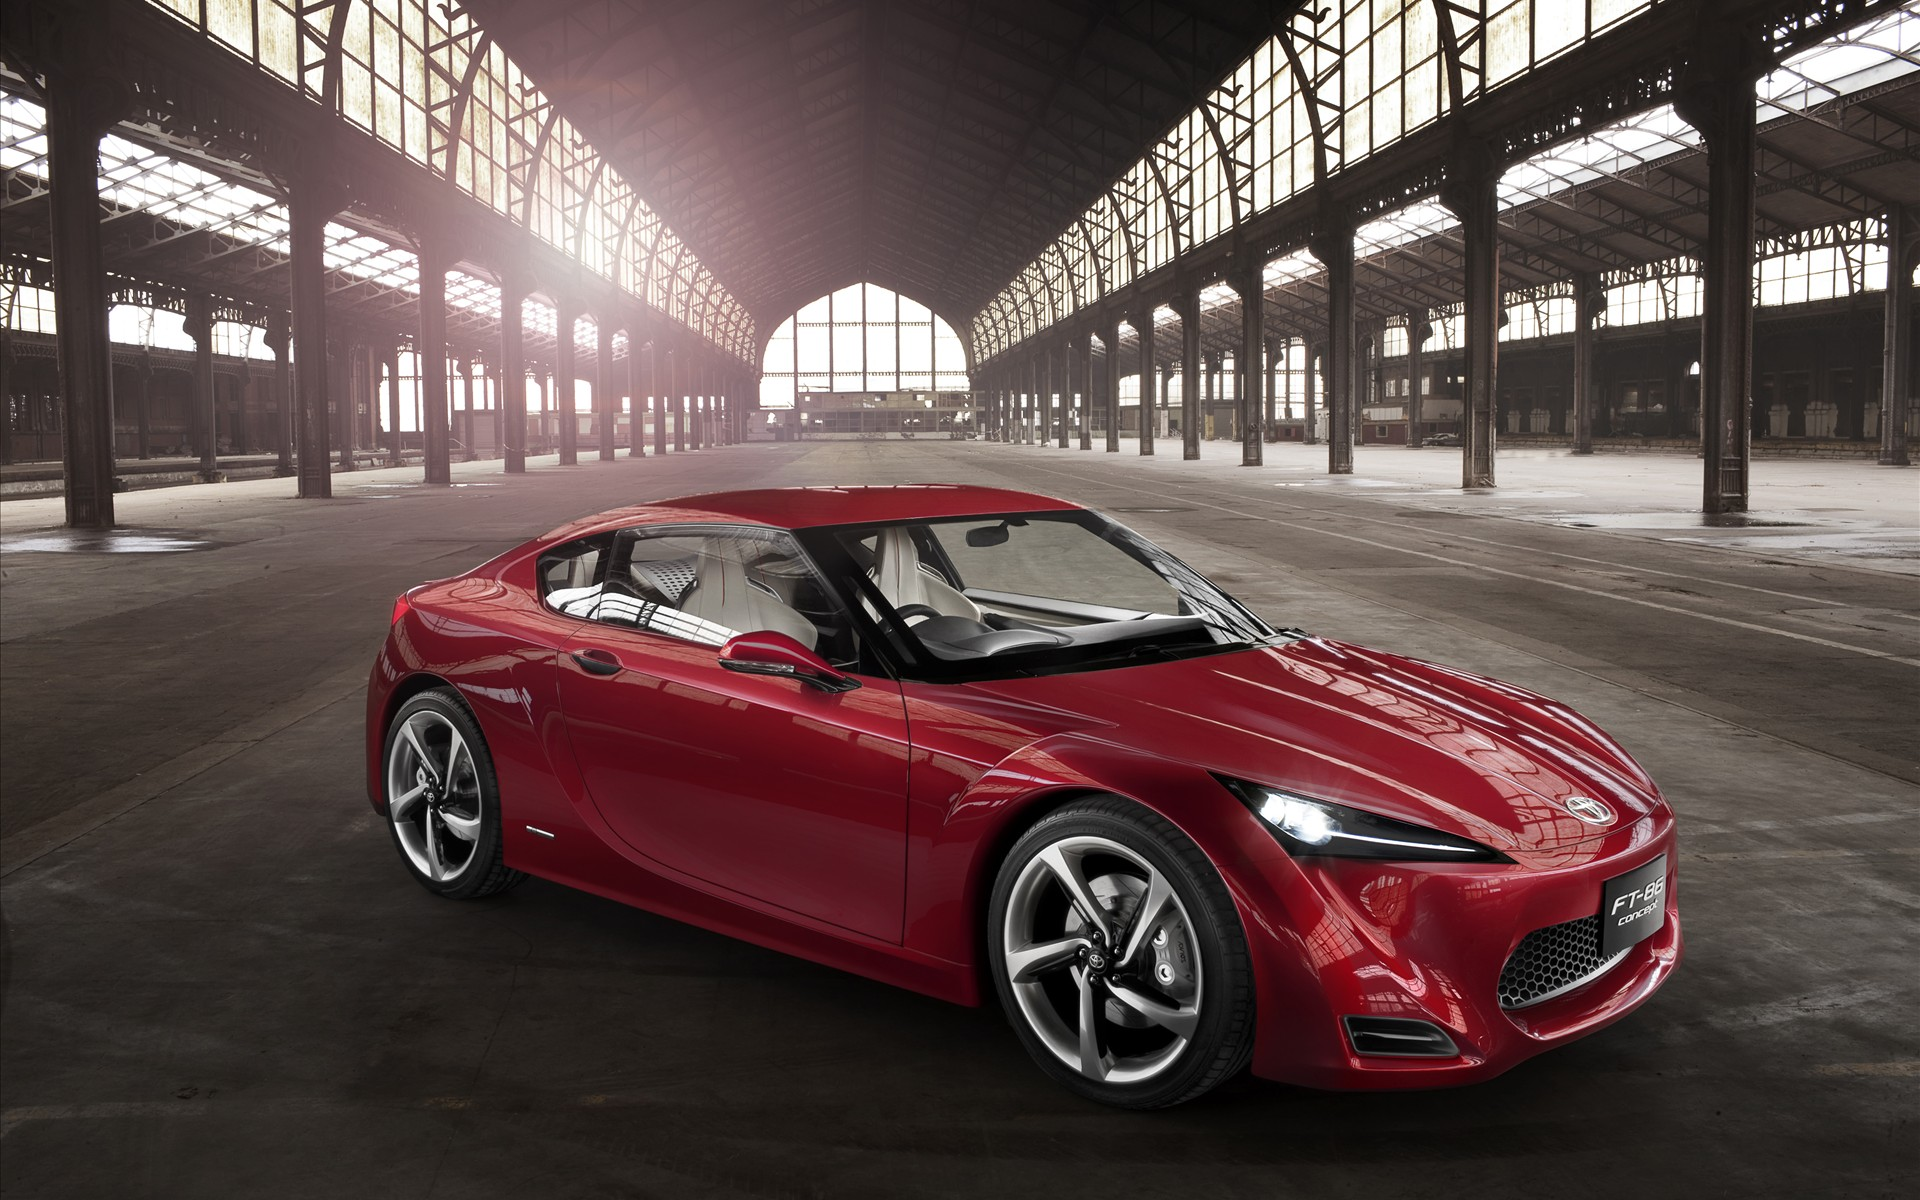 2011 Toyota FT 86 Sports Concept 620.16 Kb